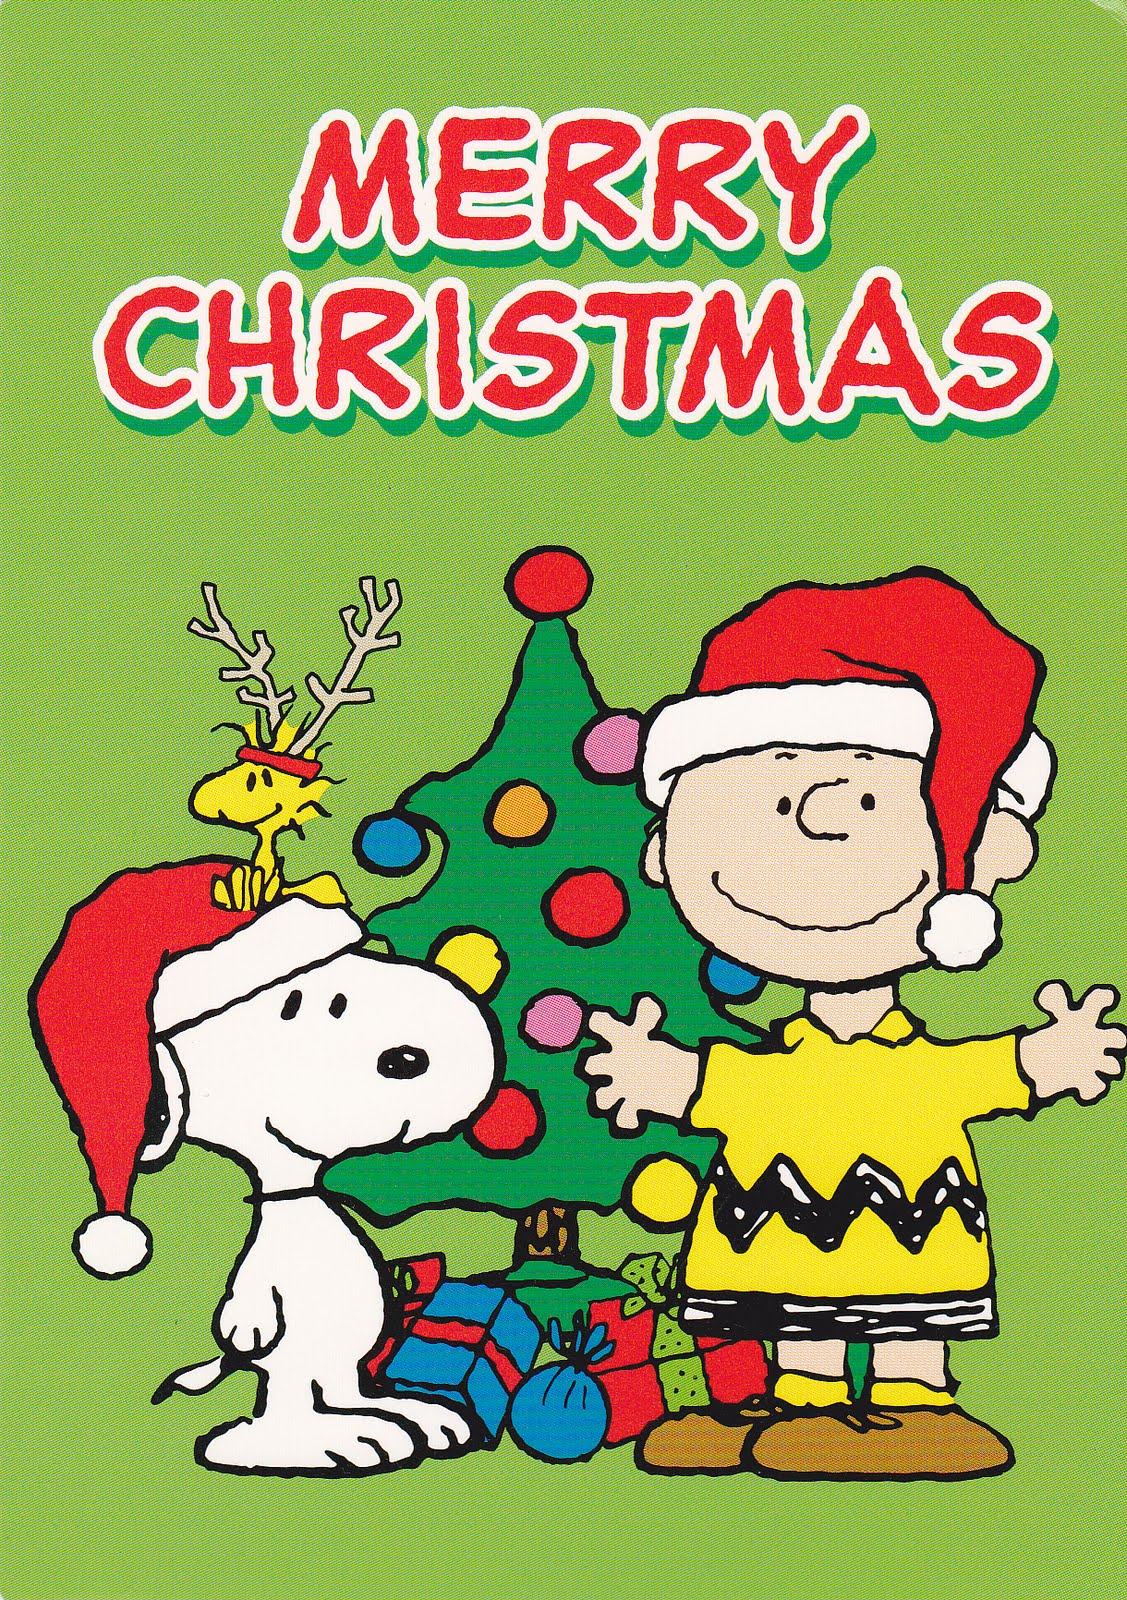 Snoopy Merry Christmas Images.Postcard A La Carte Merry Christmas And Happy New Year 2012